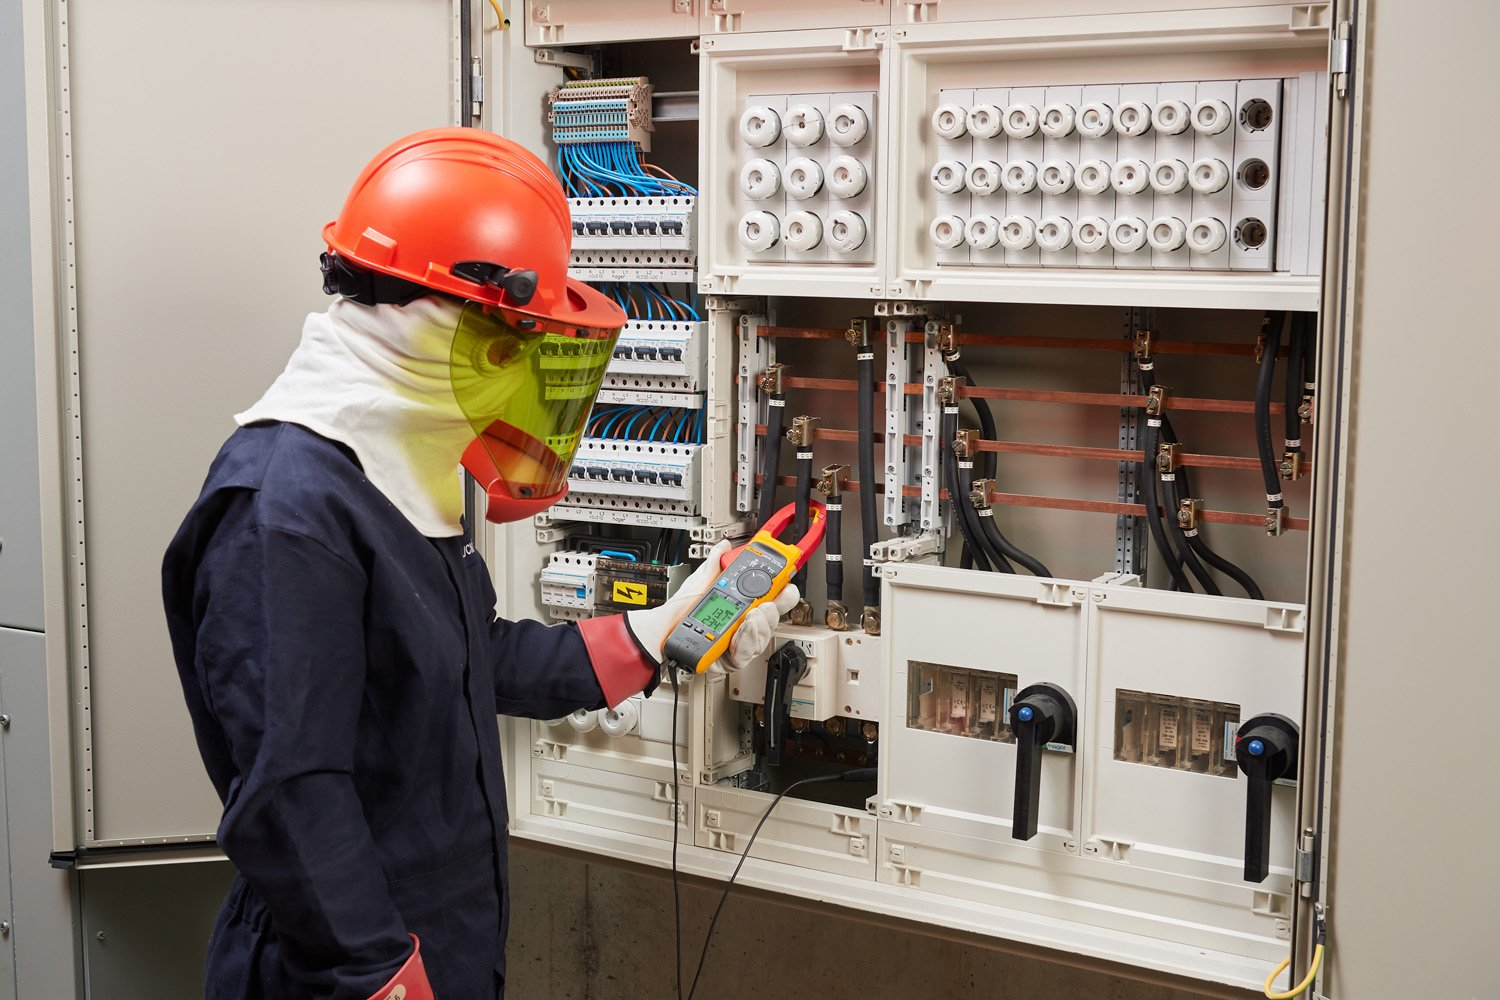 Fluke 378 FC Clamp Meter taking measurements in a panel.